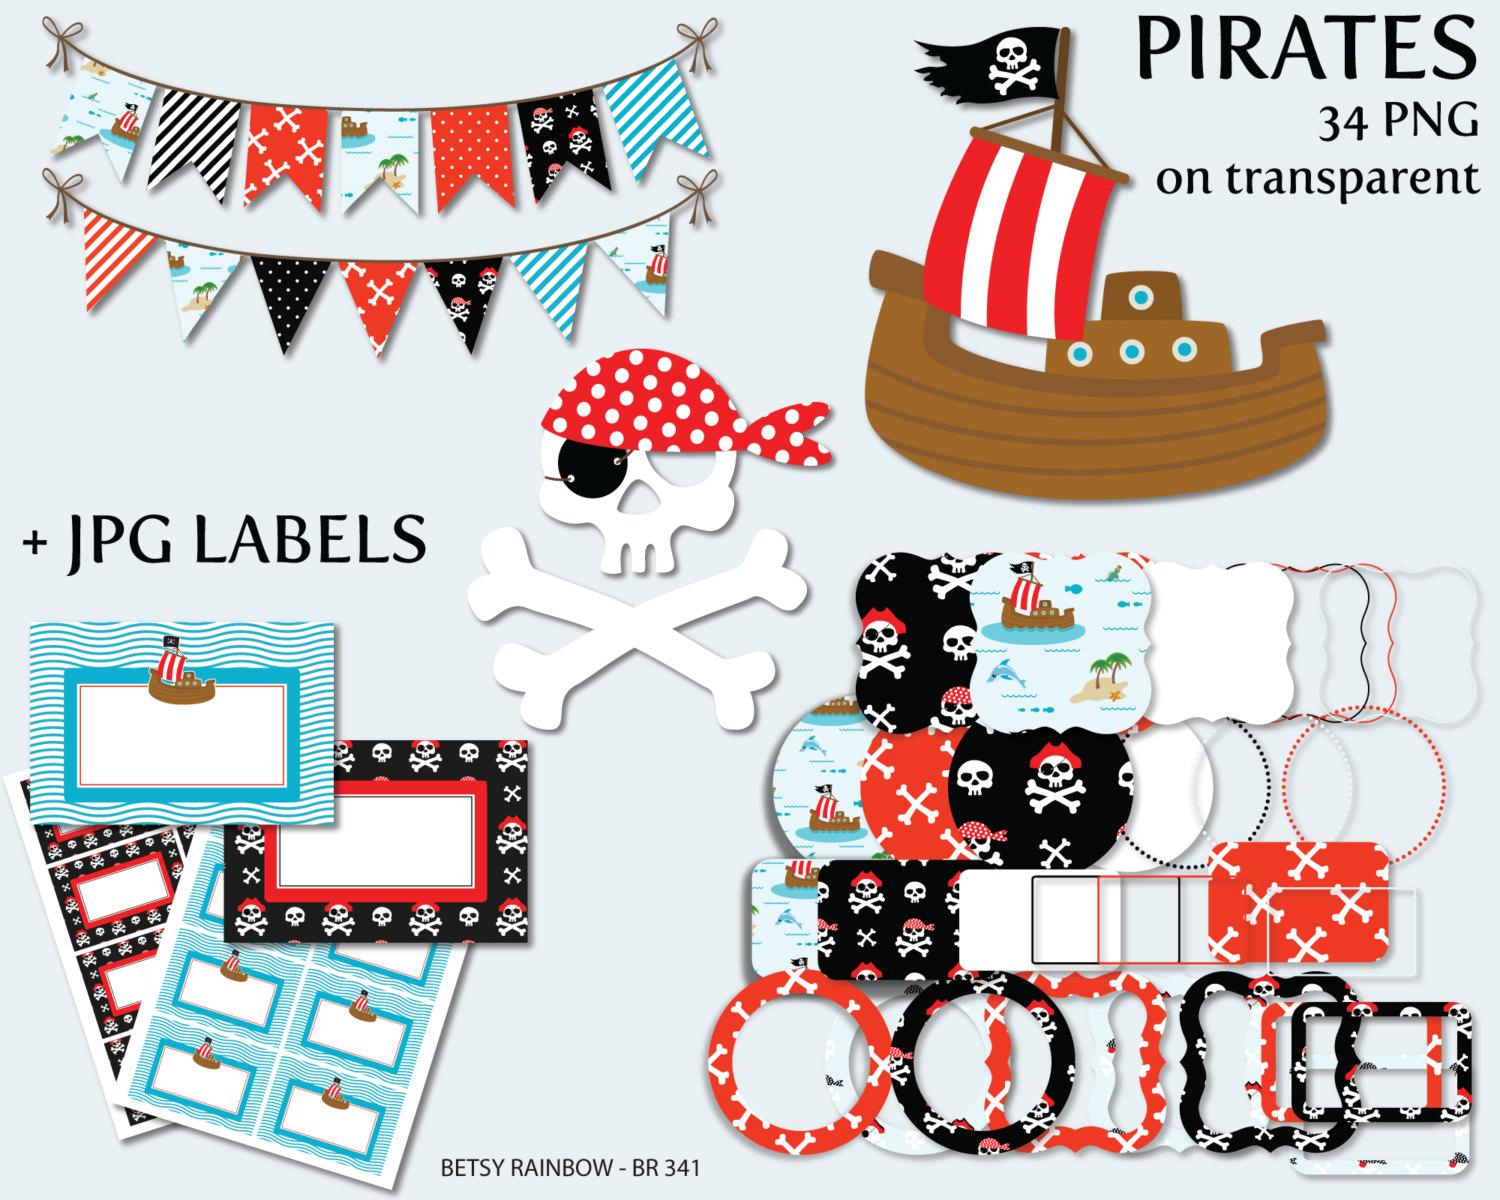 Pirates Of The Caribbean clipart pirate face Pirates pirates digital pirates digital